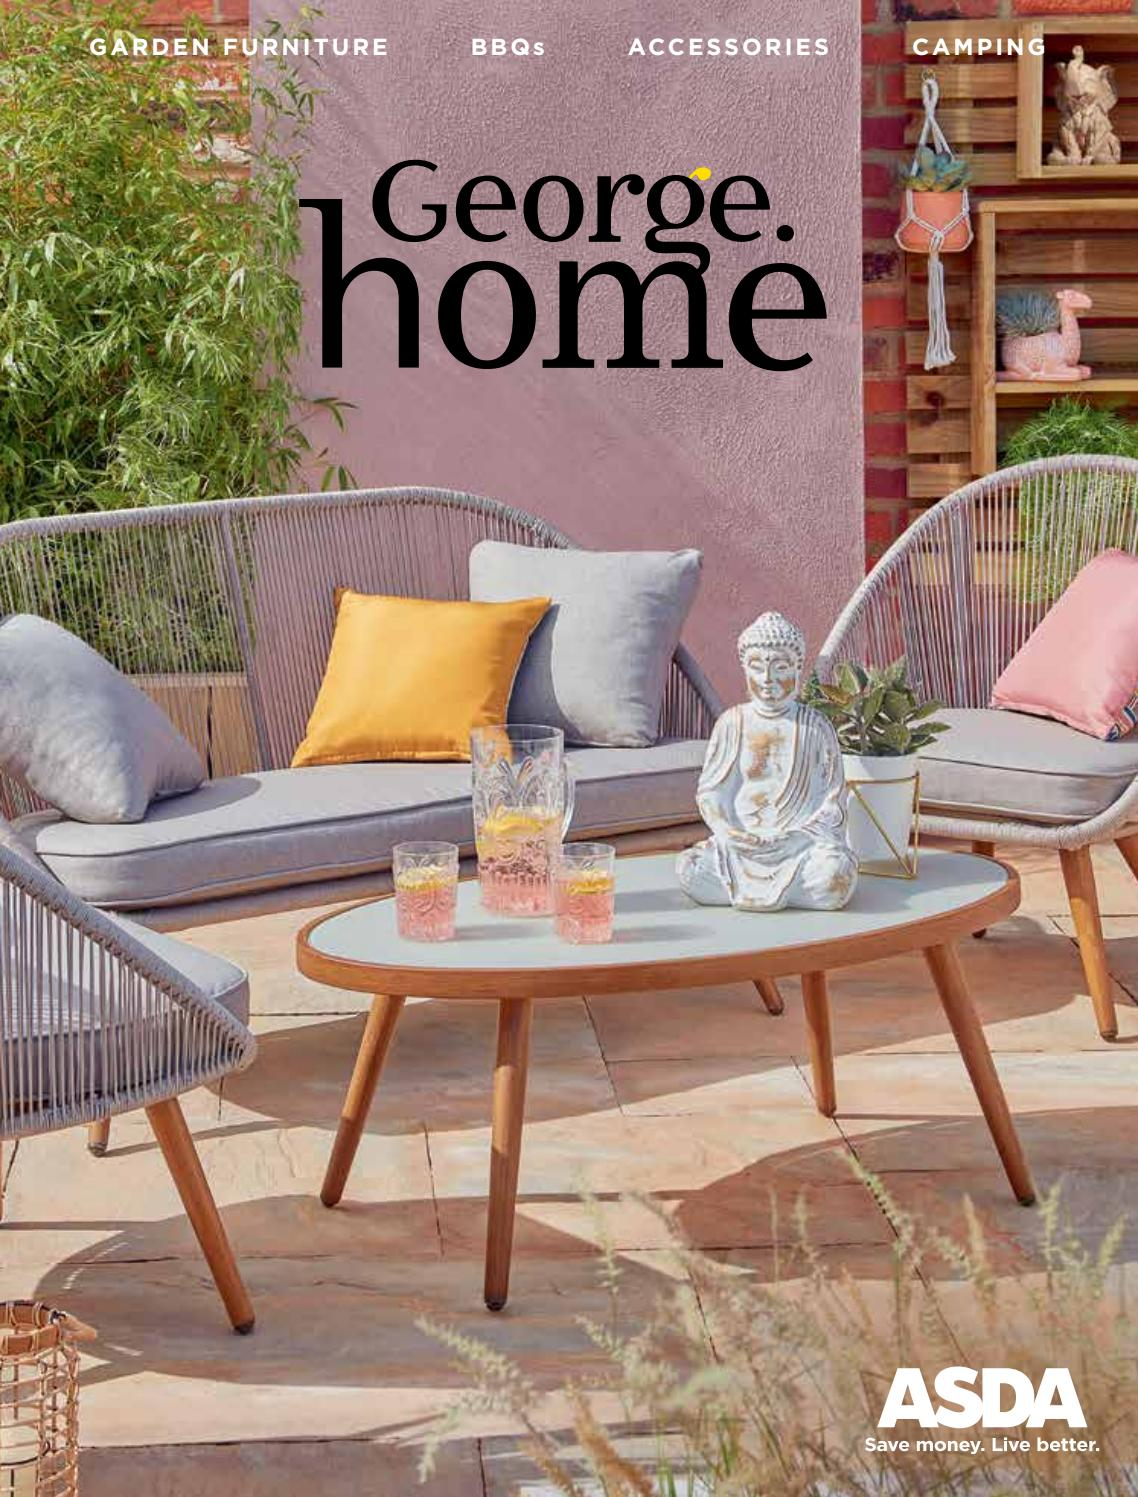 George Home Outdoor Living Catalogue by Asda - issuu